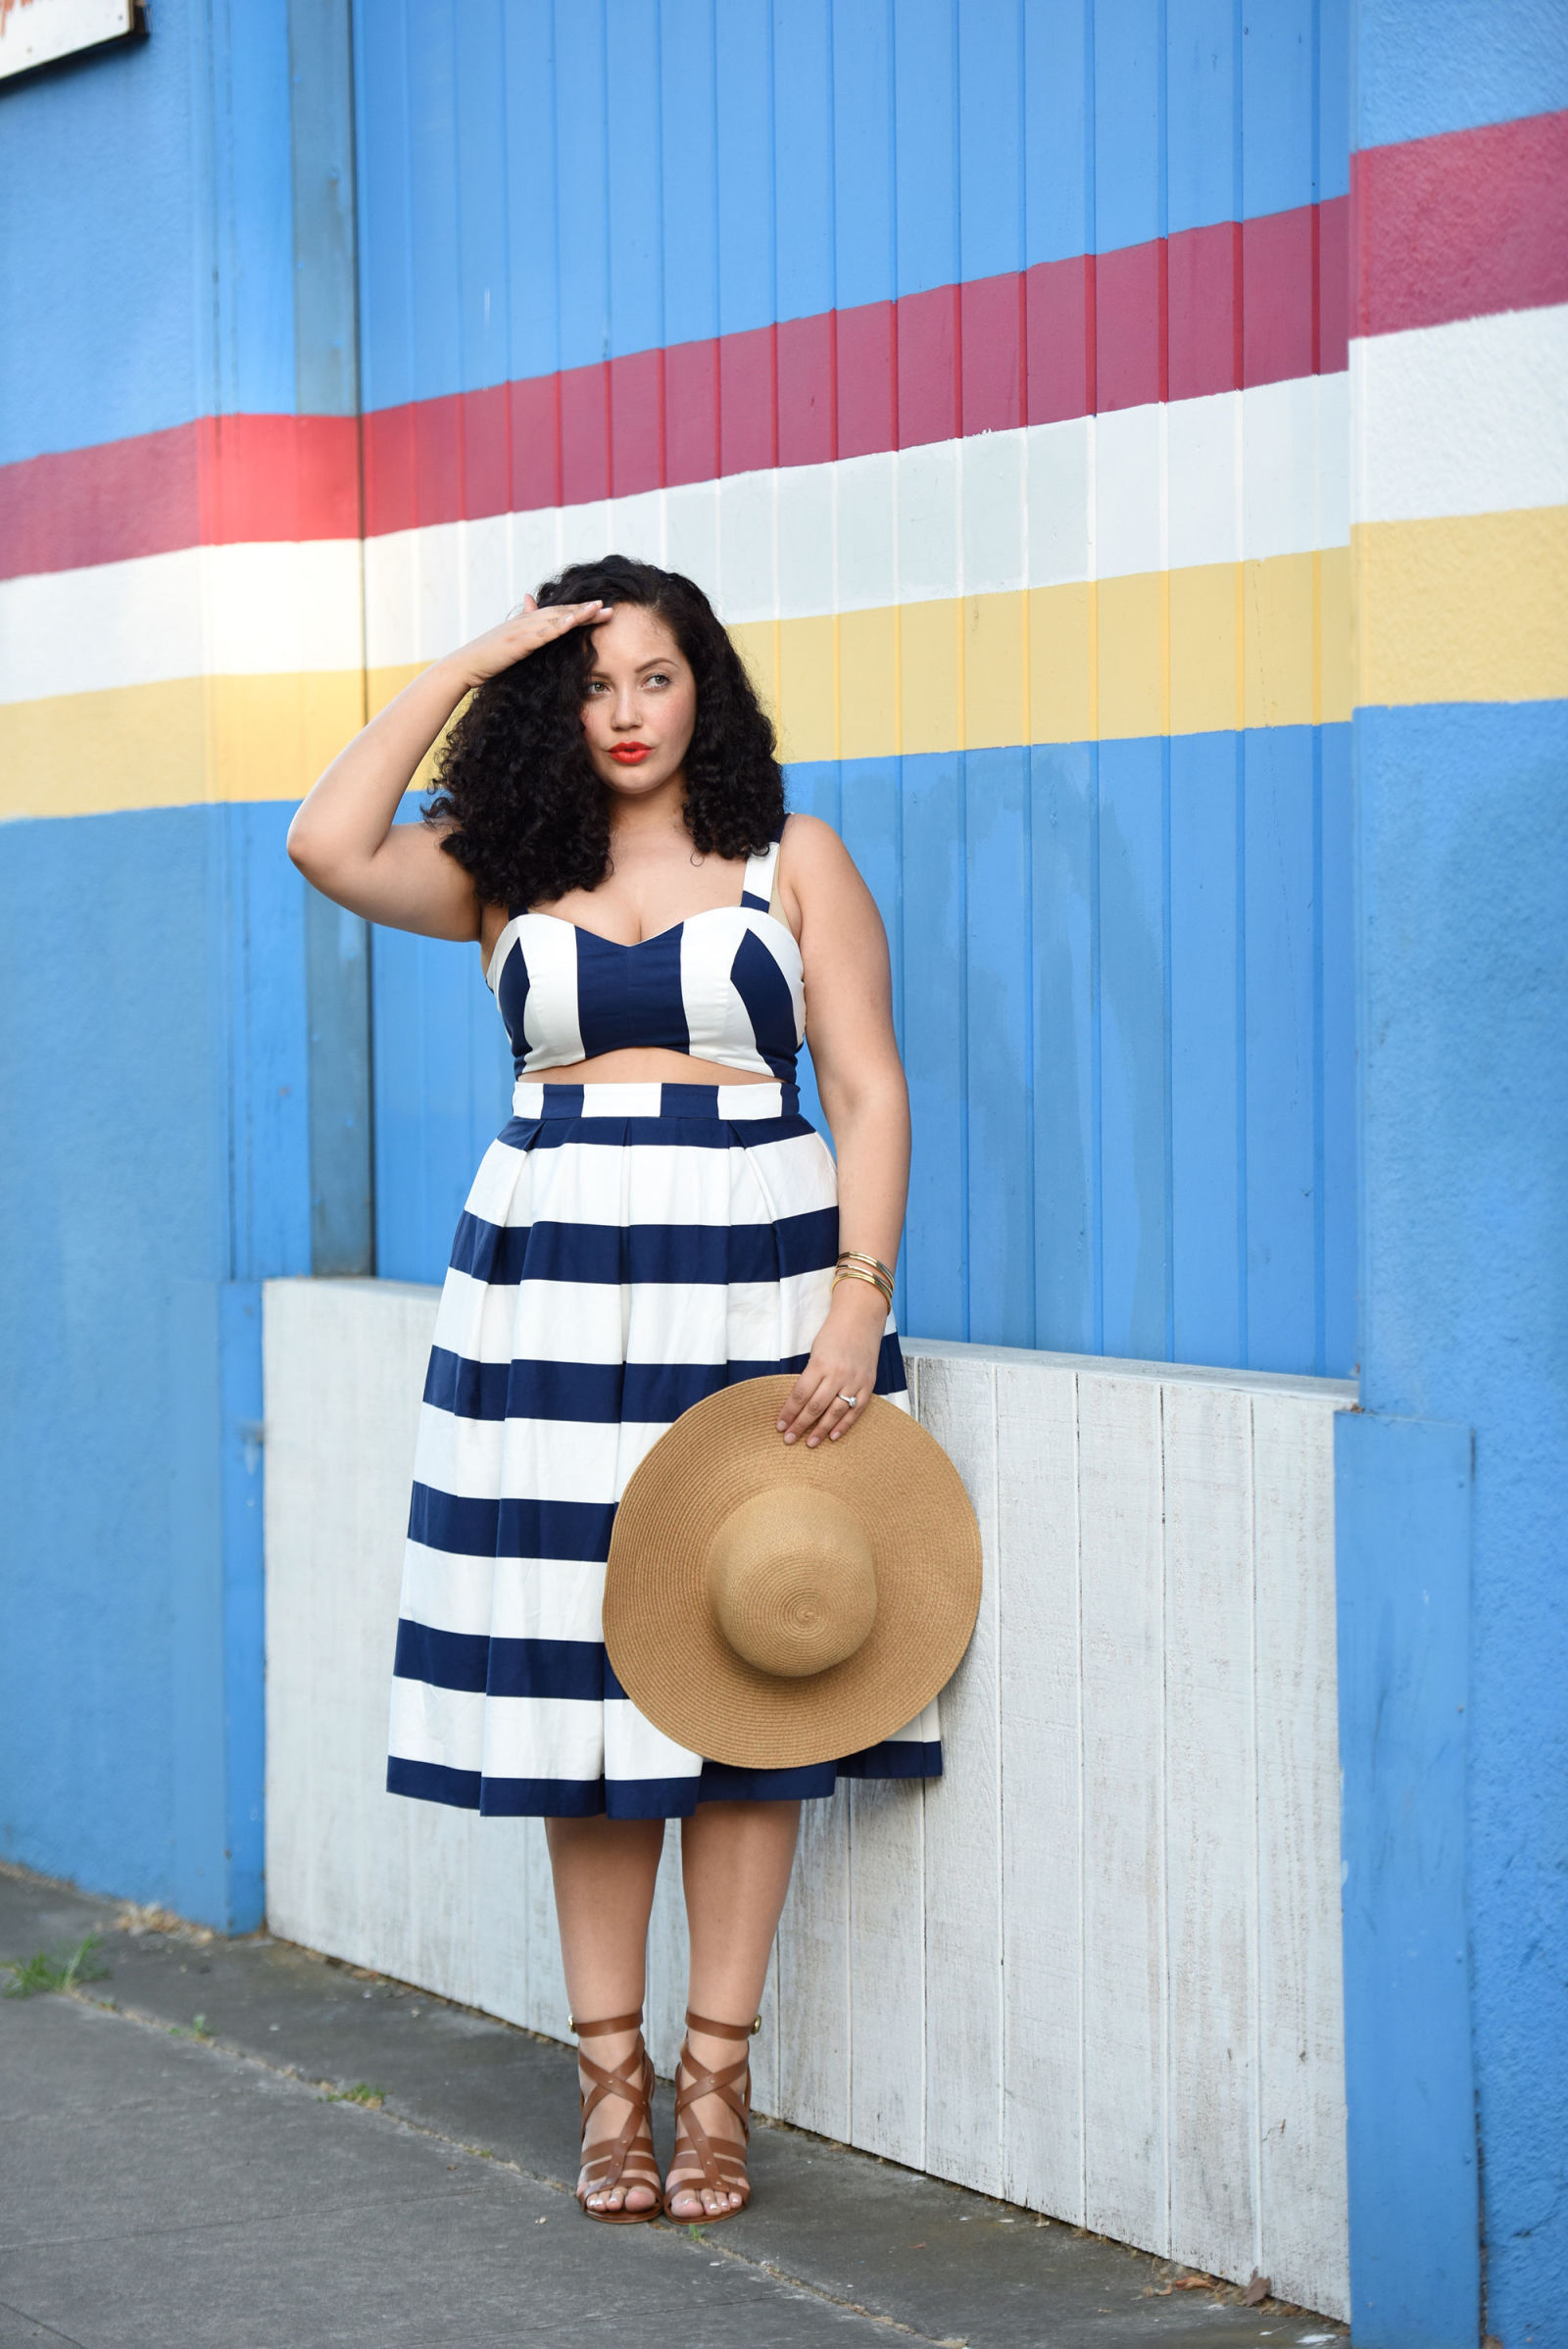 Summer styling tips from Tanesha Awasthi from Girl With Curves